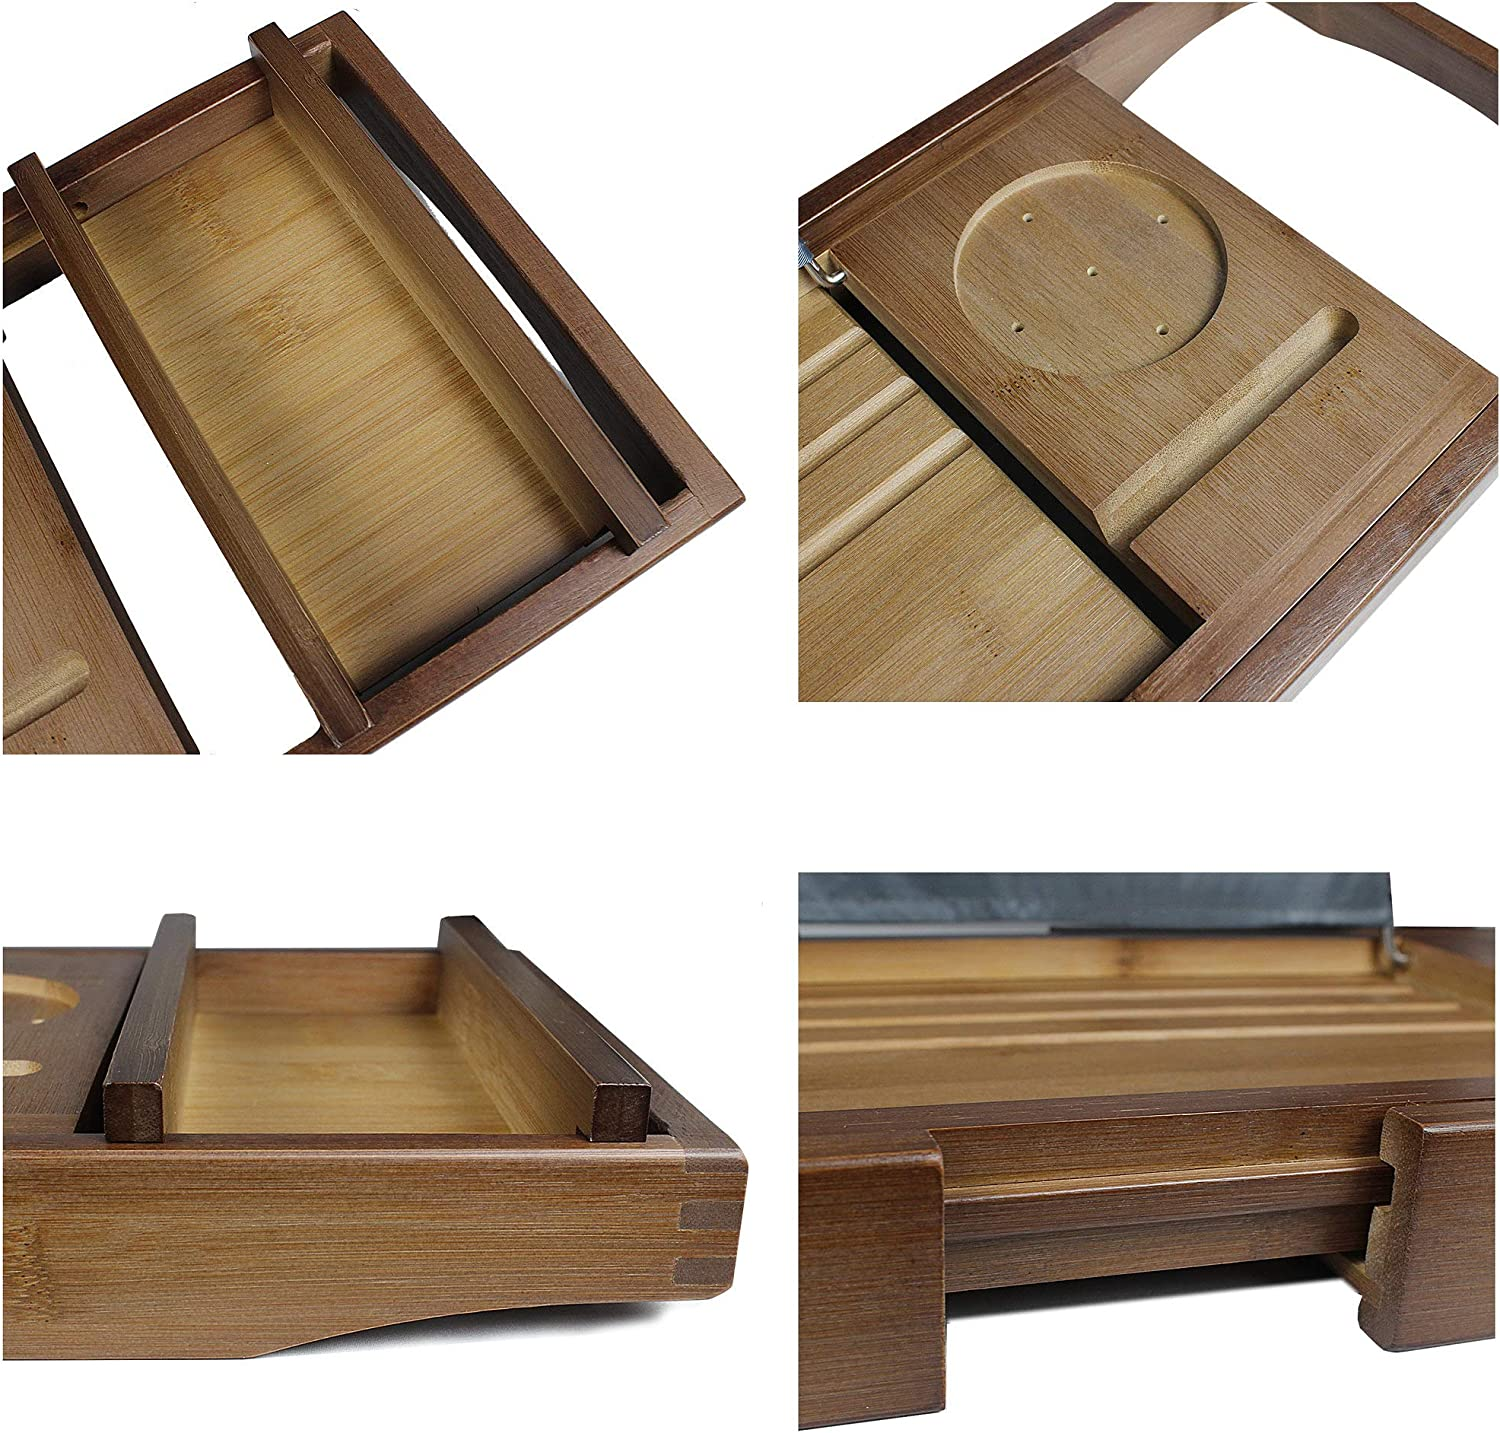 SMIBUY Bamboo Bathtub Caddy Tray-Expandable Bath Table Over Tub with Wineglass Book /& Free Soap Holder Black